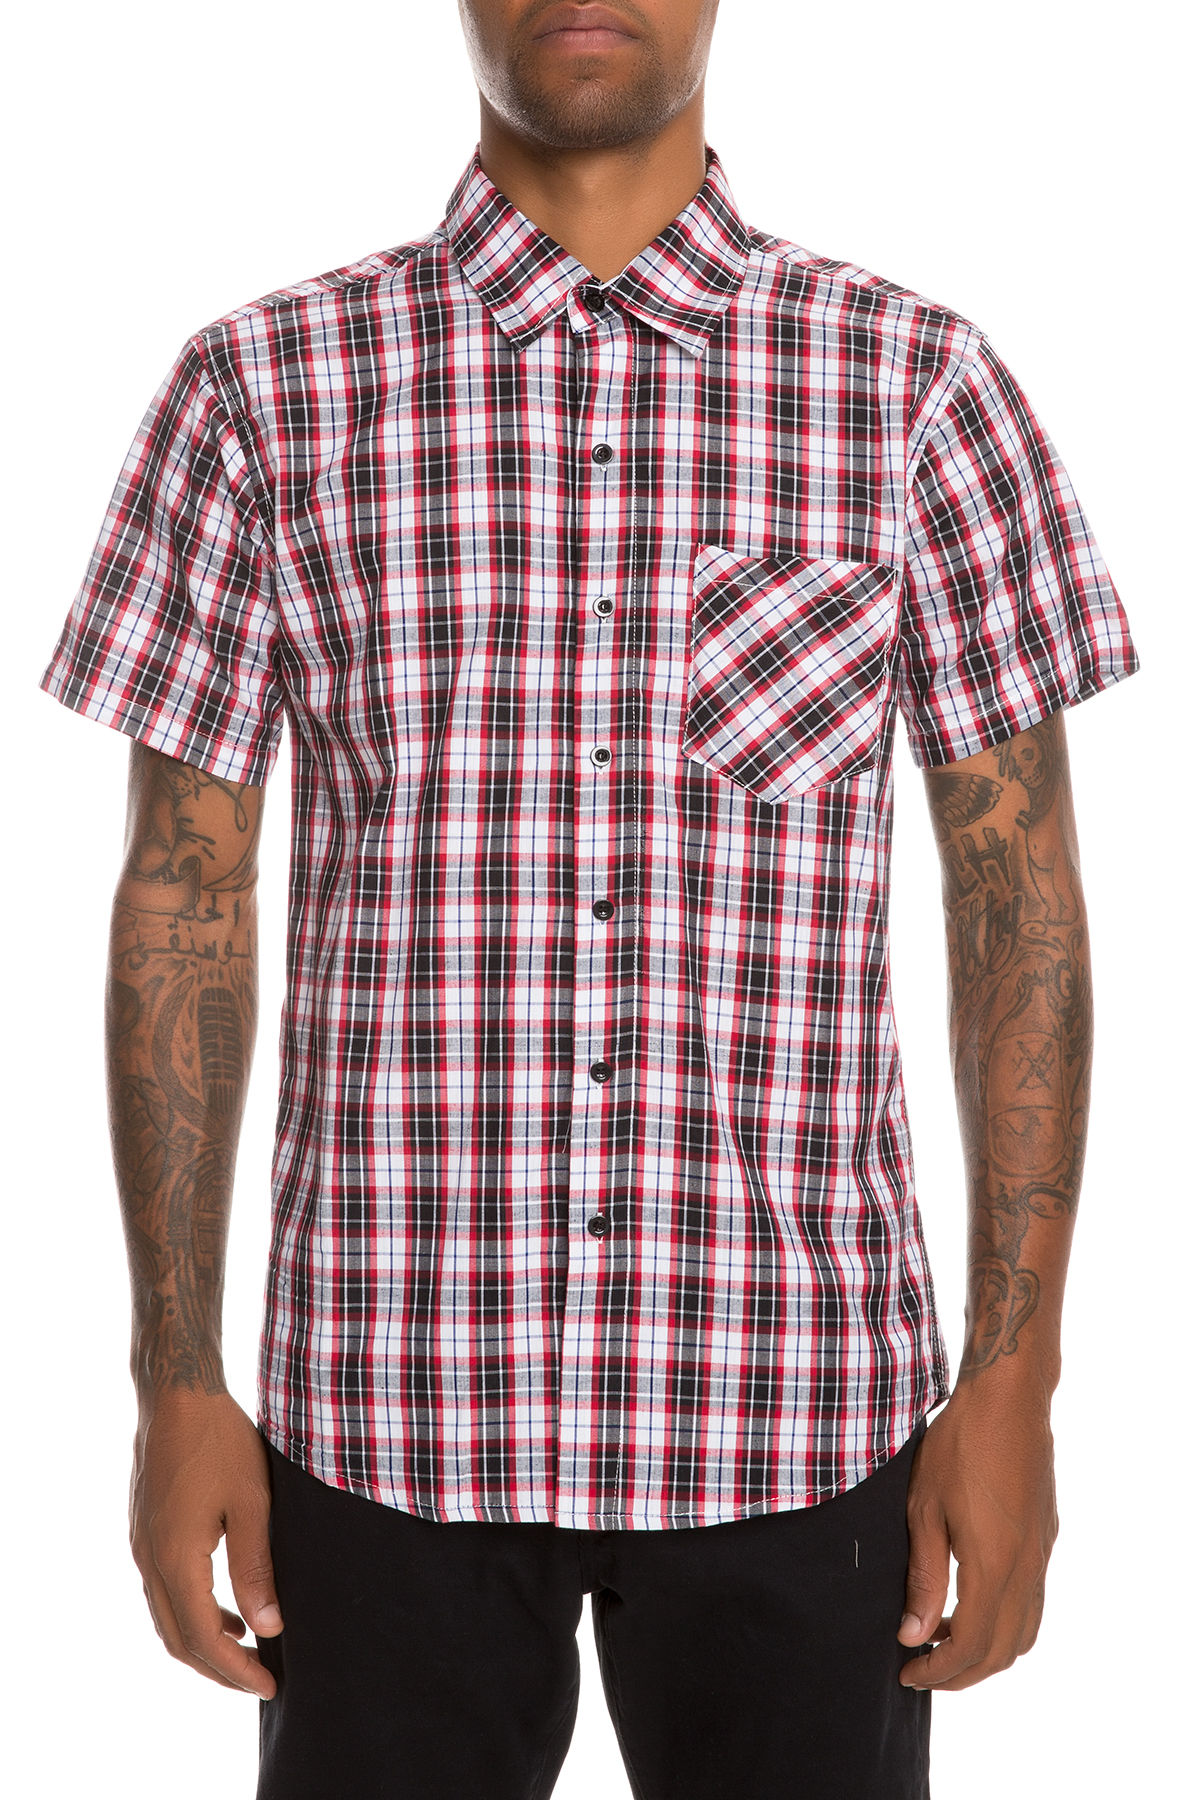 Image of The Something Still Button-Up Shirt in Red/White